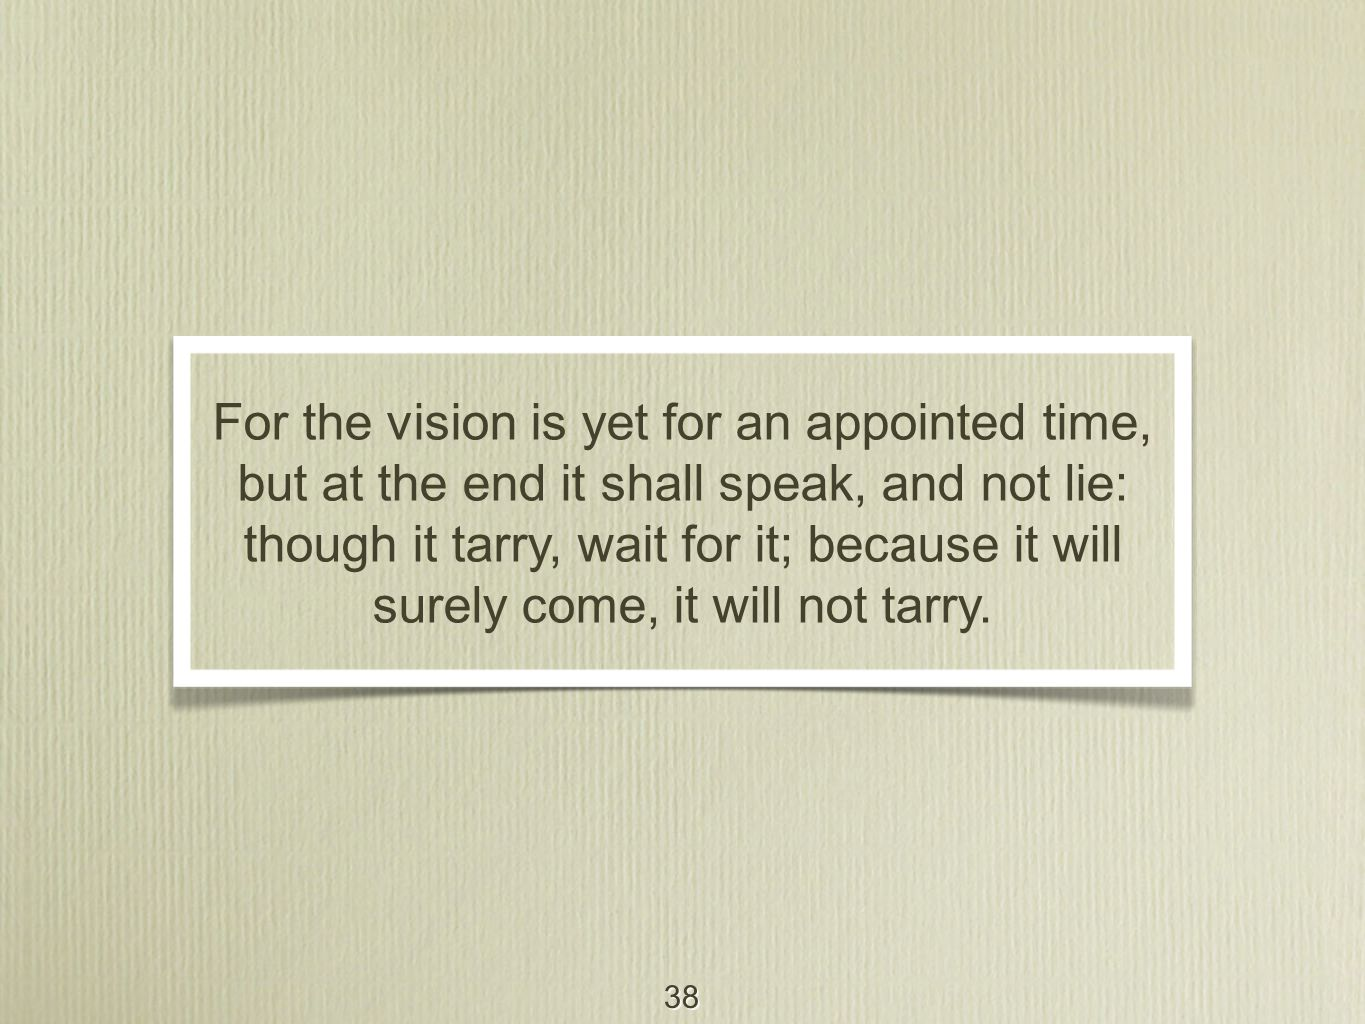 38 For the vision is yet for an appointed time, but at the end it shall speak, and not lie: though it tarry, wait for it; because it will surely come, it will not tarry.